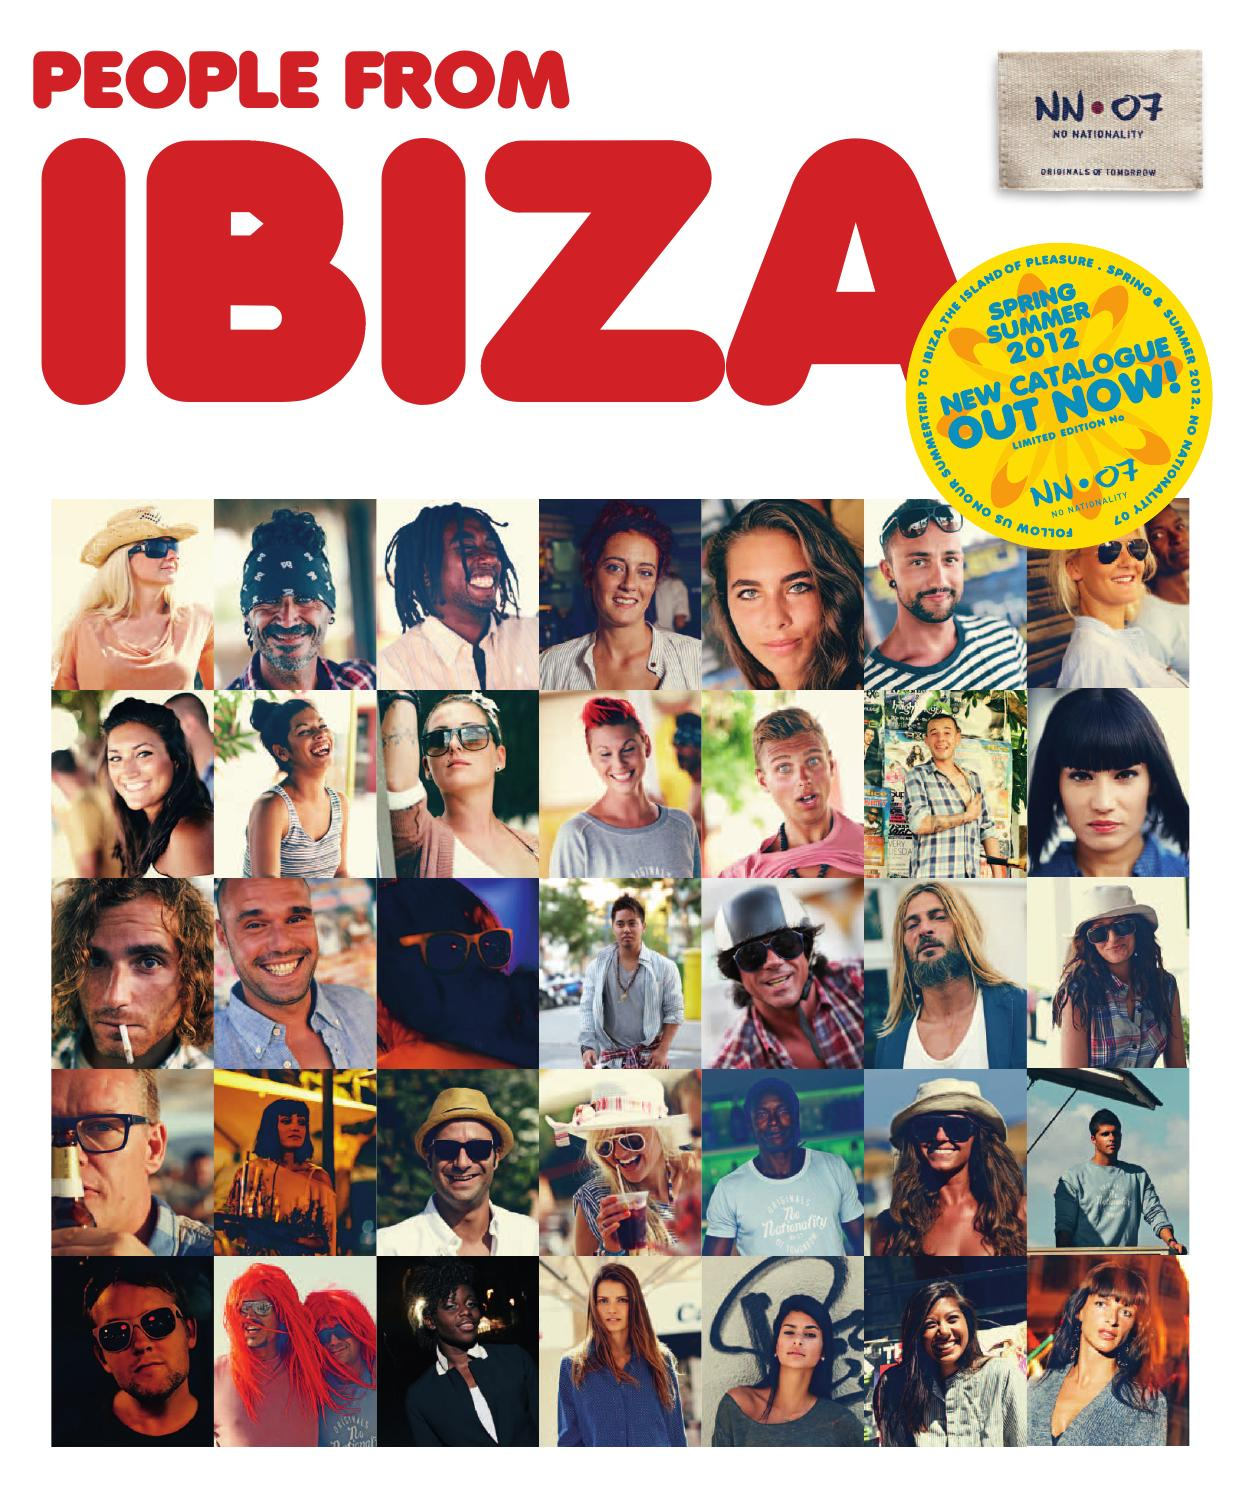 21883074a98e NN07 SS12 - People from Ibiza by Sebastian Andersson - issuu